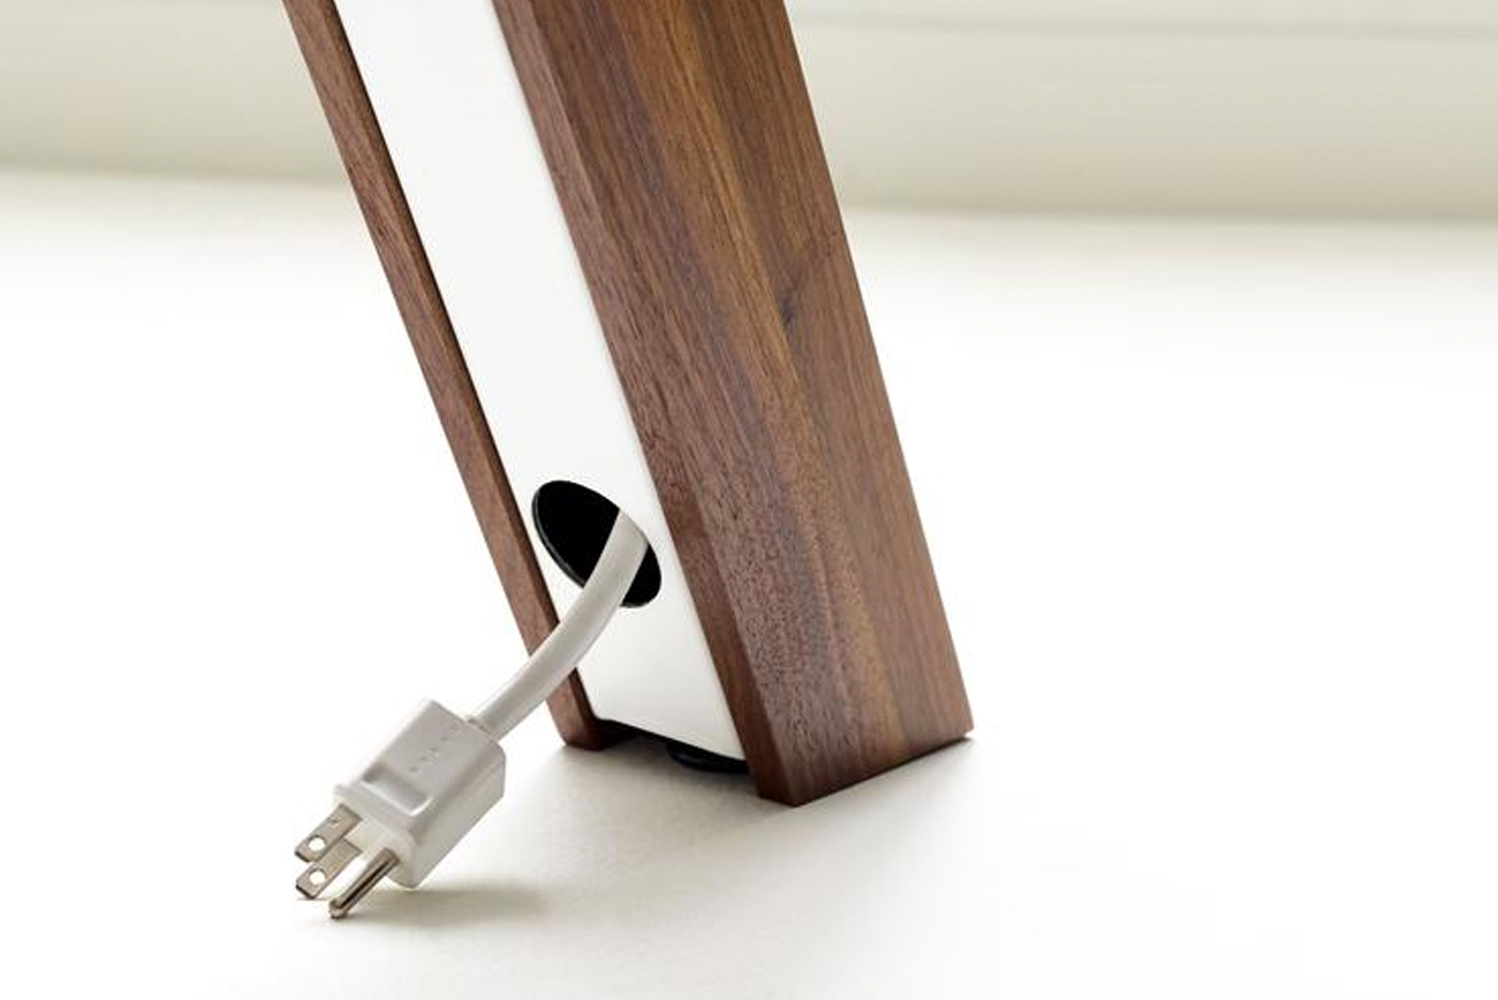 Boss allows users to charge any number of electronic devices minus the clutter of power cords.